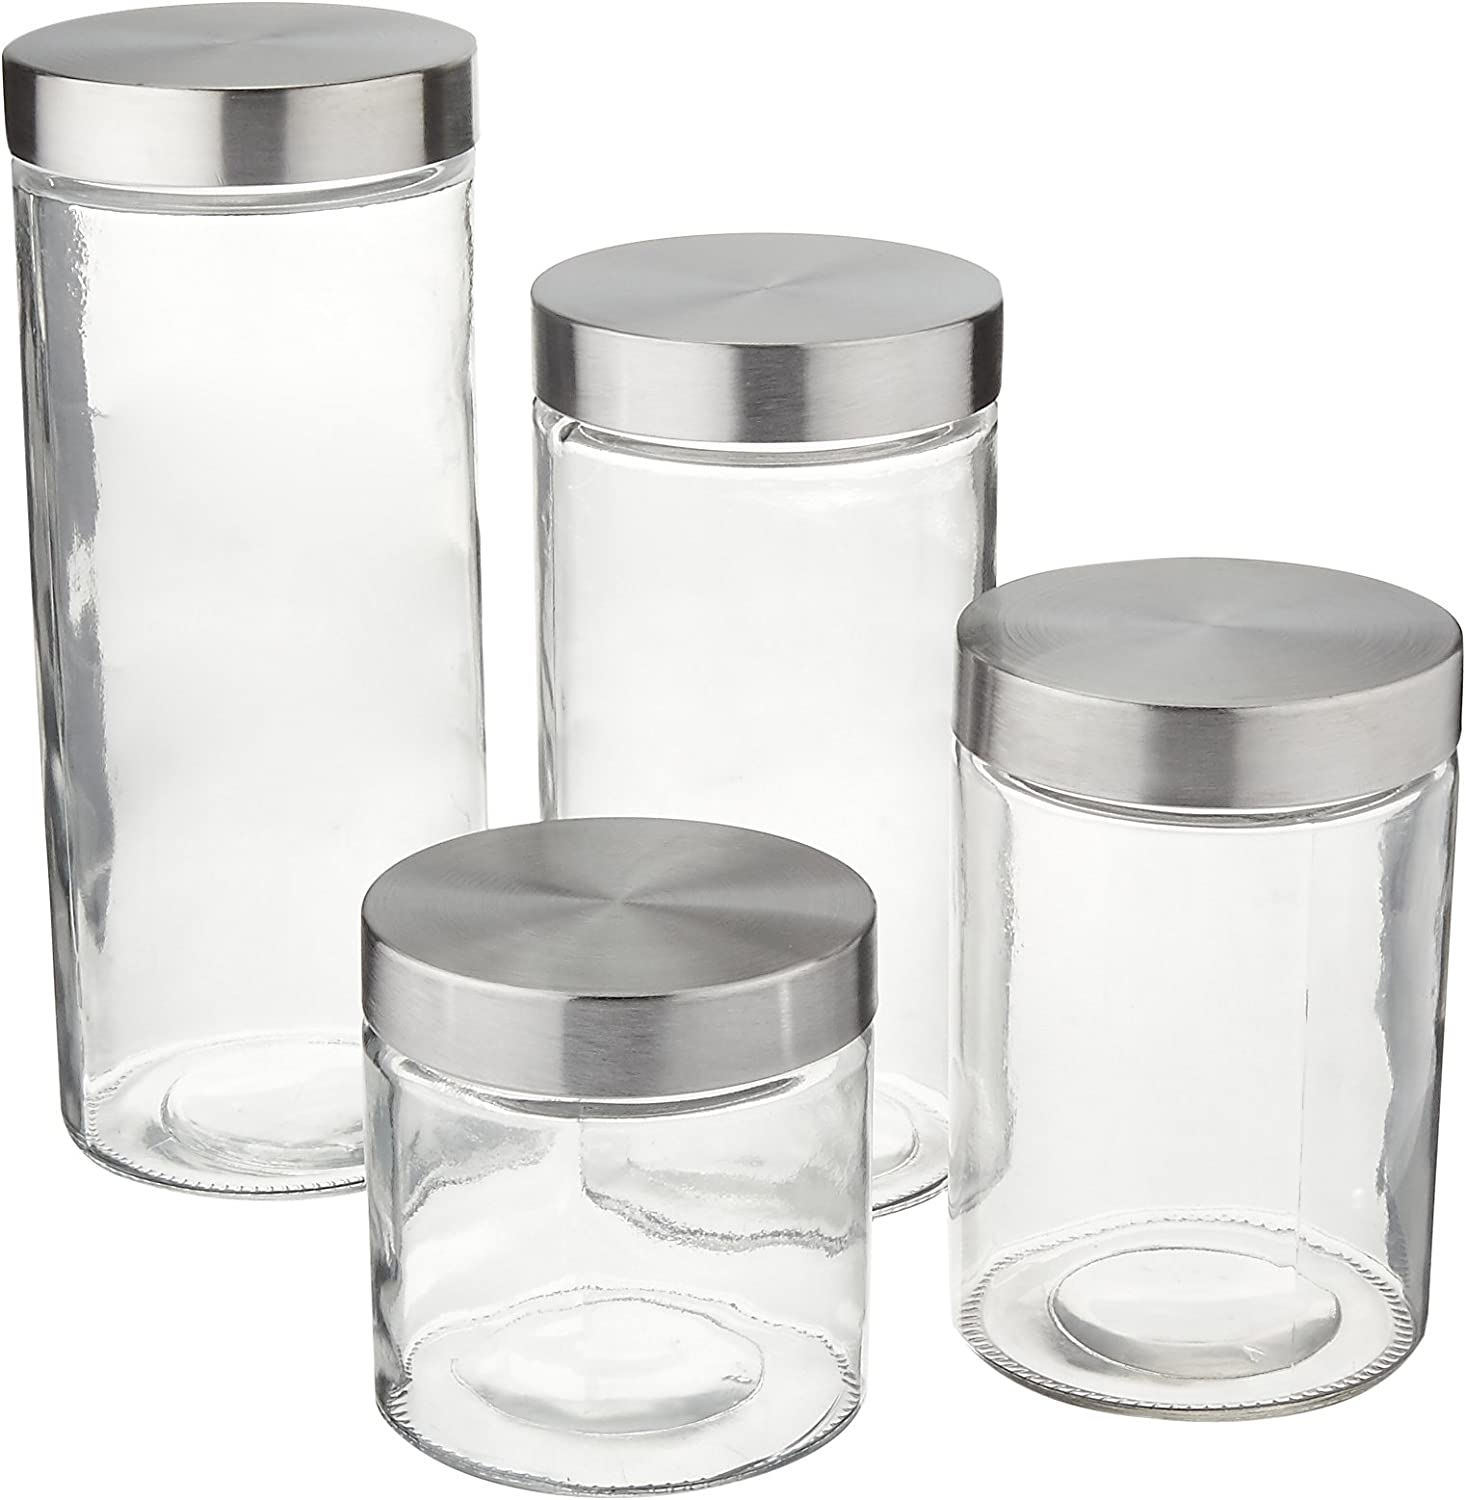 Anchor Hocking 4-Piece Glass Canister Set with Giant Nylon Scoop